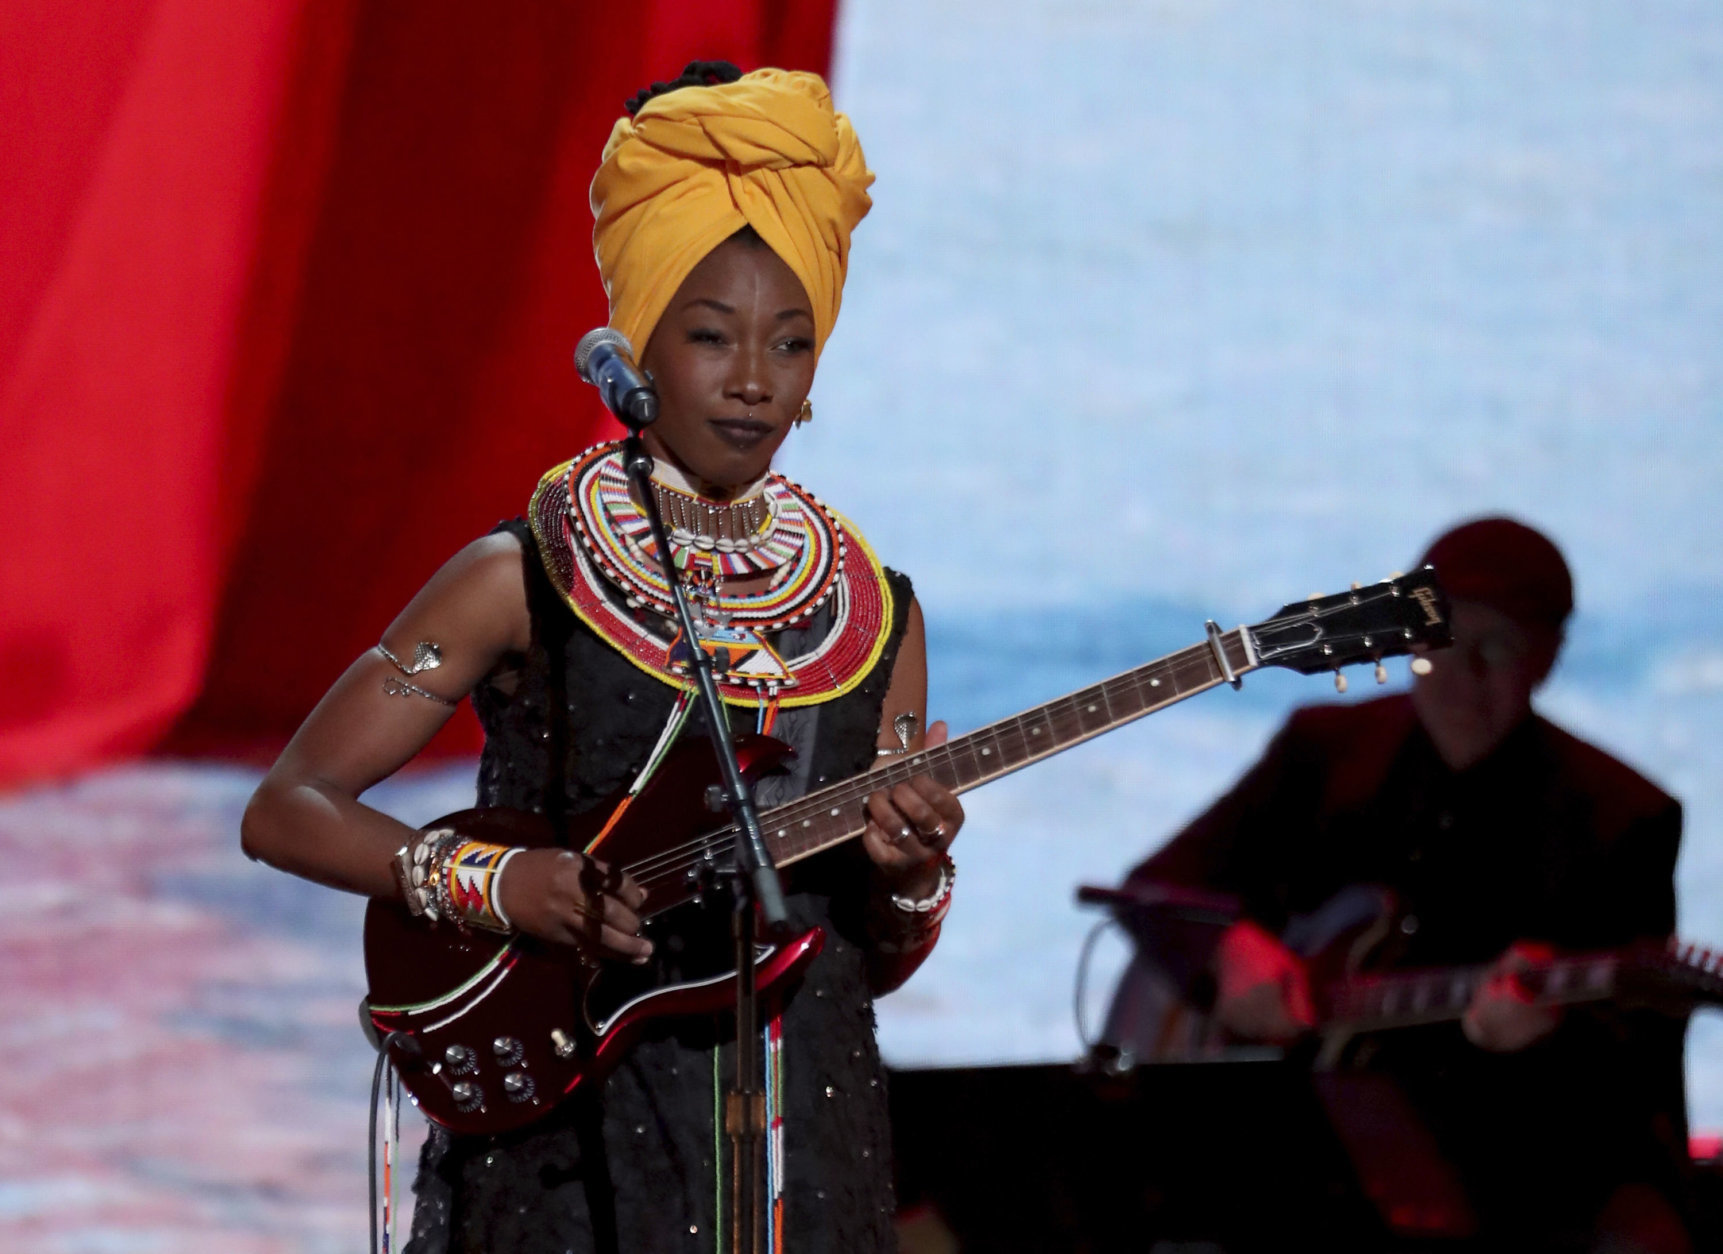 Fatoumata Diawara performs at the 61st annual Grammy Awards on Sunday, Feb. 10, 2019, in Los Angeles. (Photo by Matt Sayles/Invision/AP)